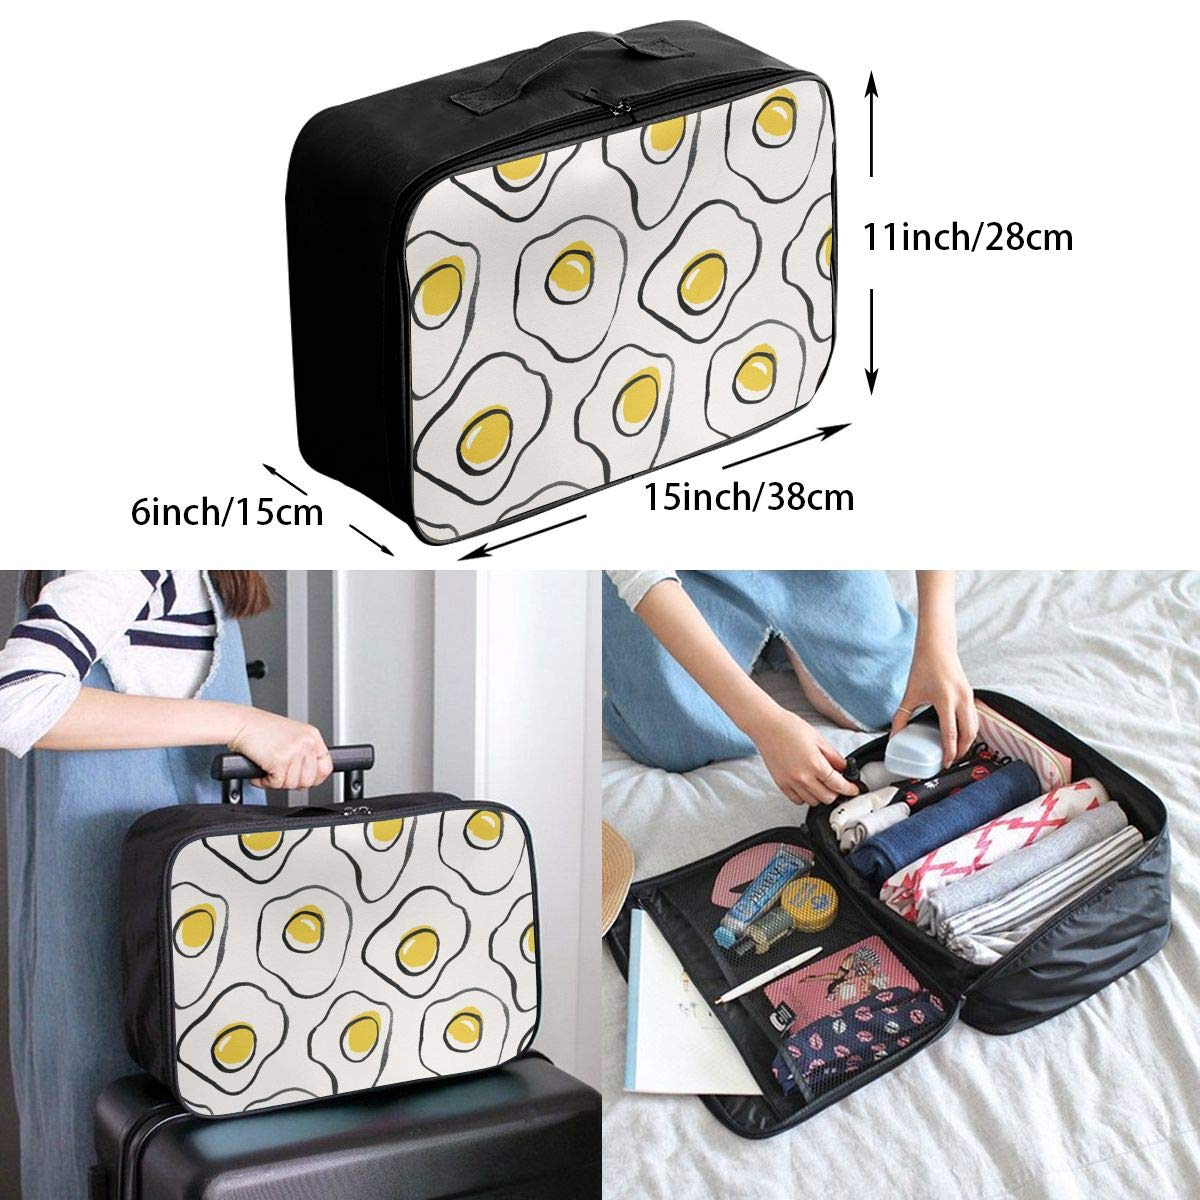 Travel Luggage Duffle Bag Lightweight Portable Handbag Egg Pattern Large Capacity Waterproof Foldable Storage Tote